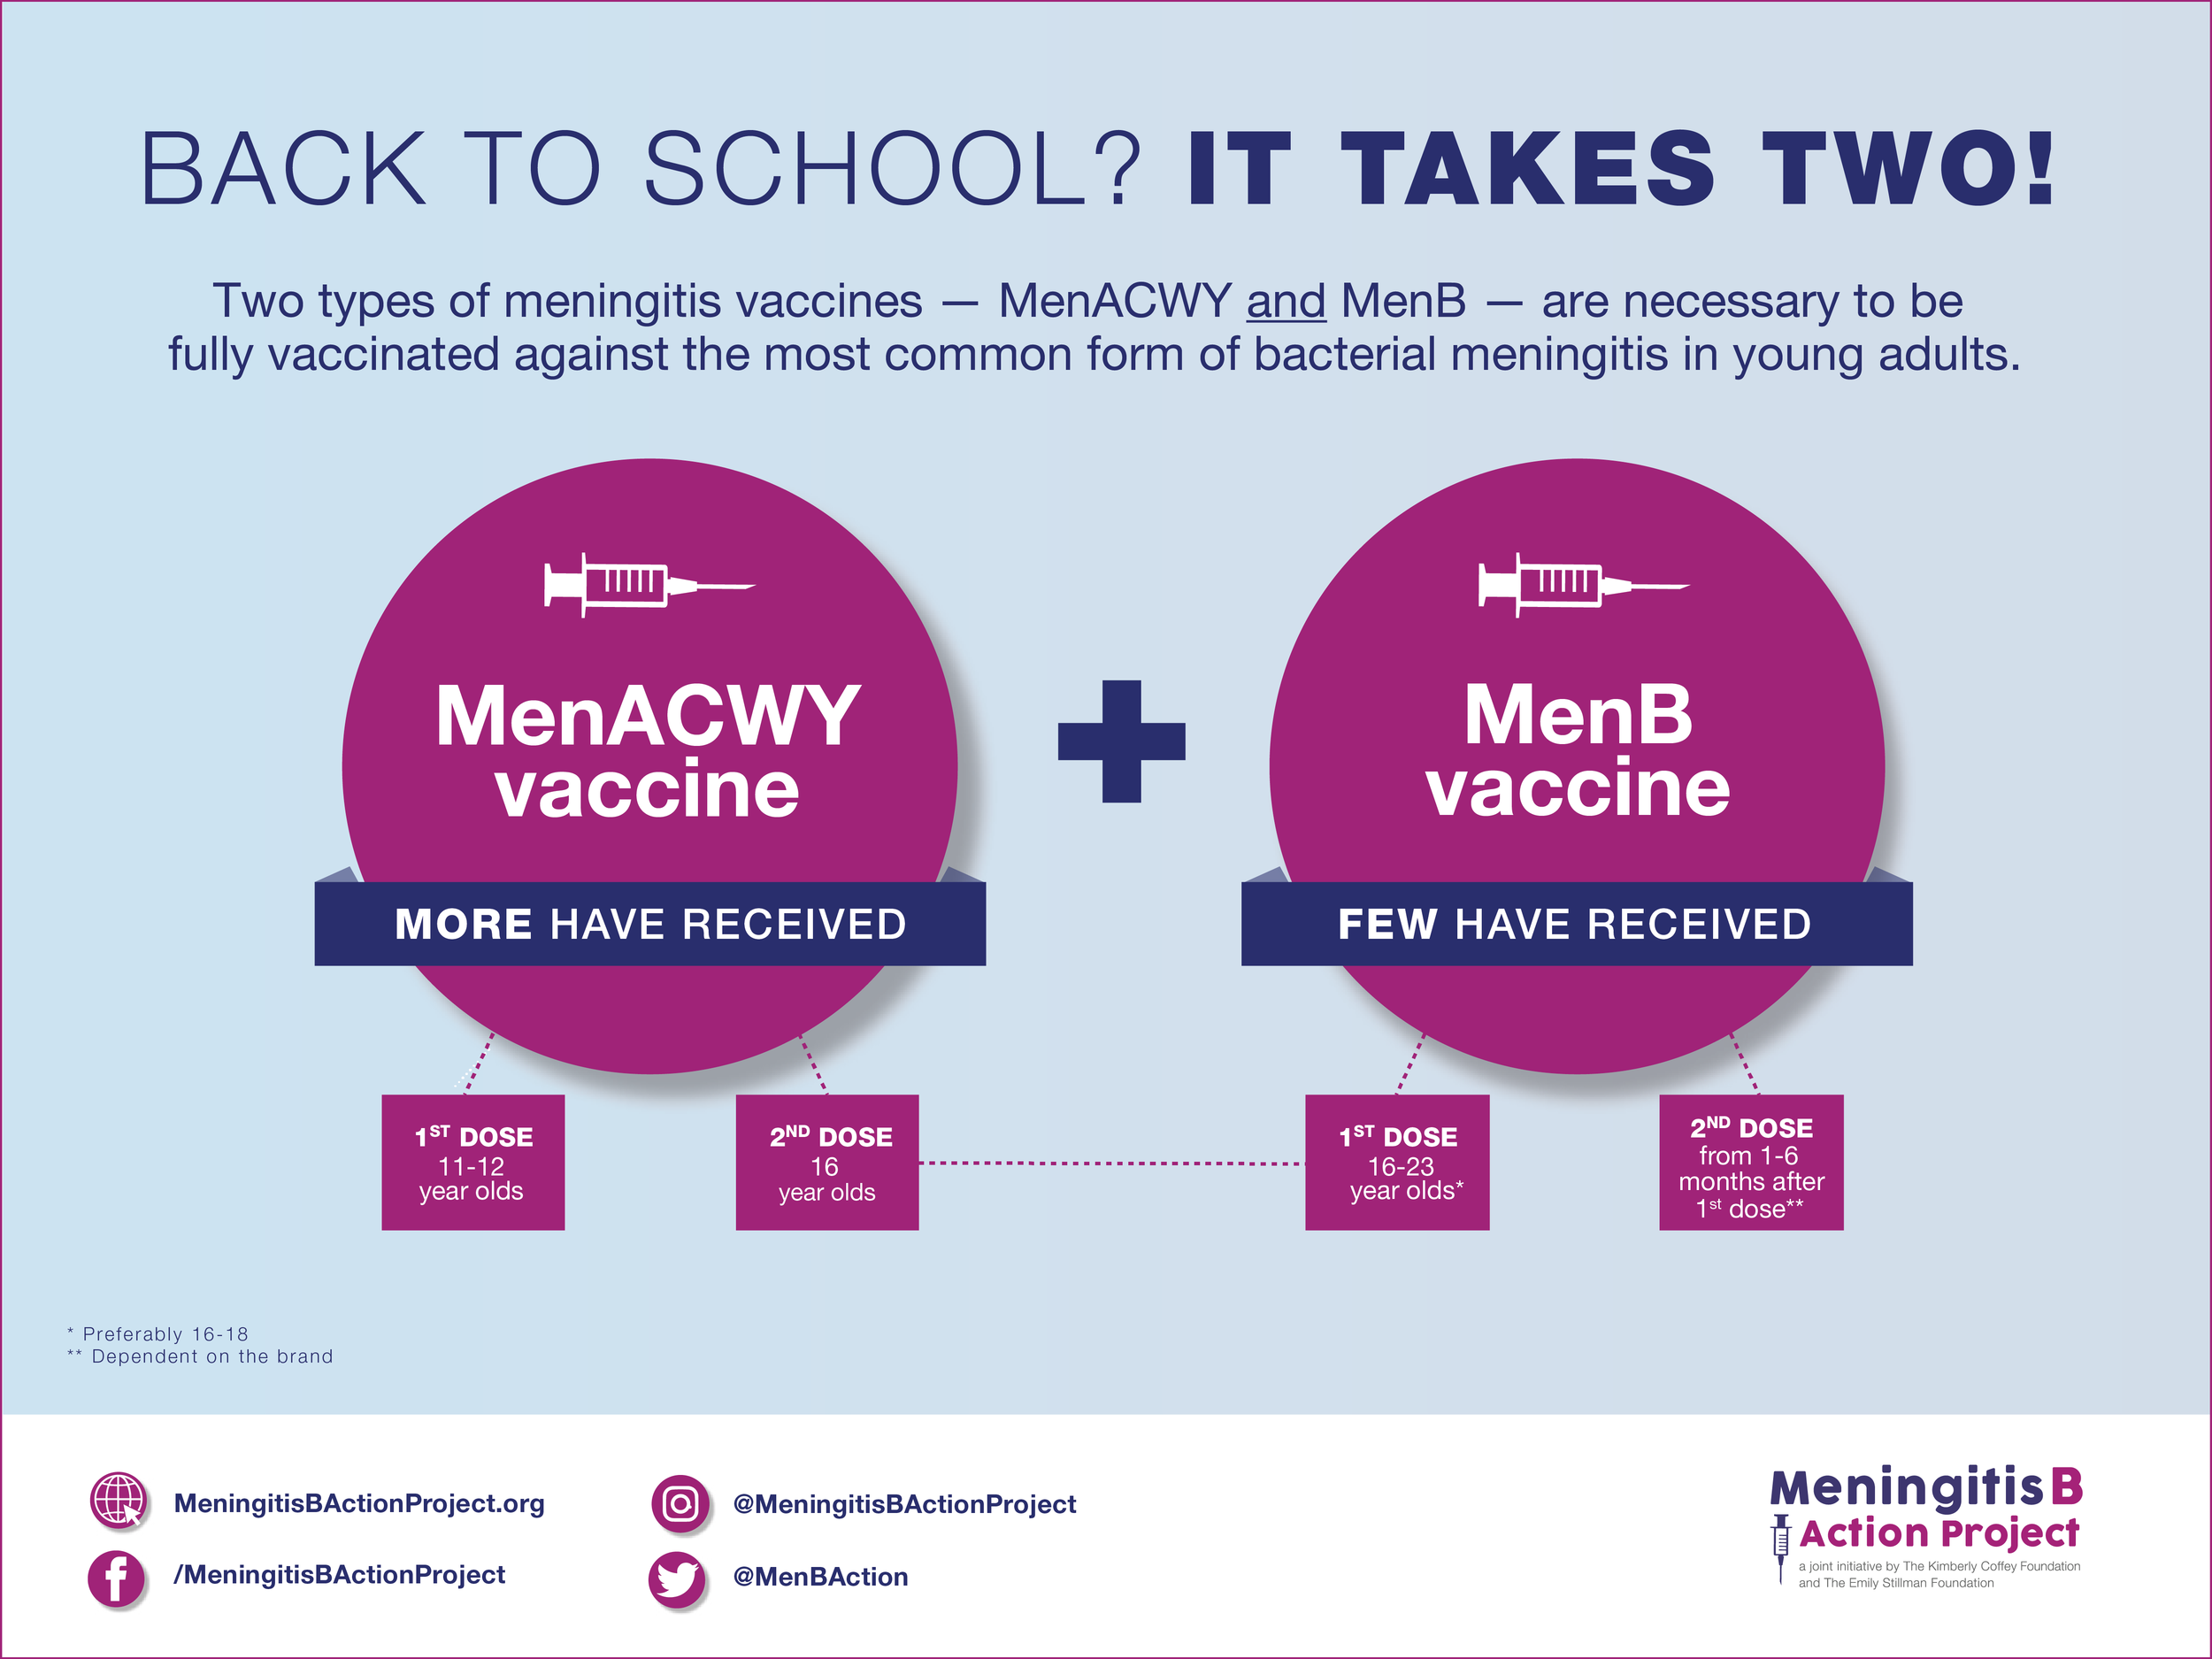 For Facebook    Suggested post: Today, I am helping the Meningitis B Action Project with an important message for all of you getting ready for back to school! Meningitis can be serious and deadly. Young adults ages 16-23 are at higher risk. Talk to your provider about all the necessary doses of the MenACWY and MenB vaccines #bteamwashere #meningitisb #meningitis